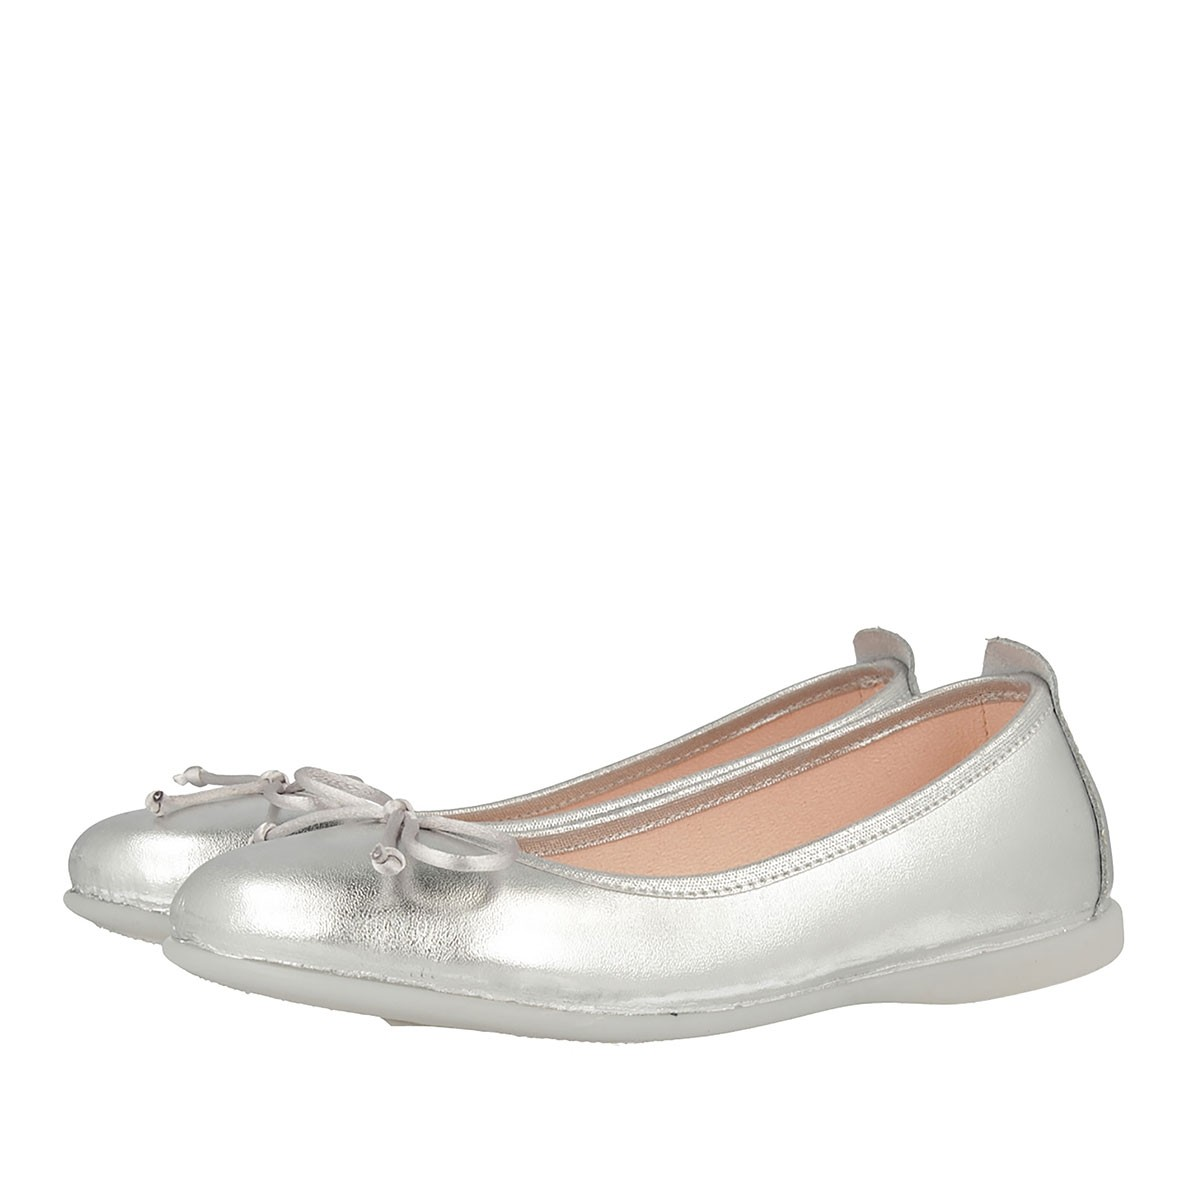 Ballerine fillette